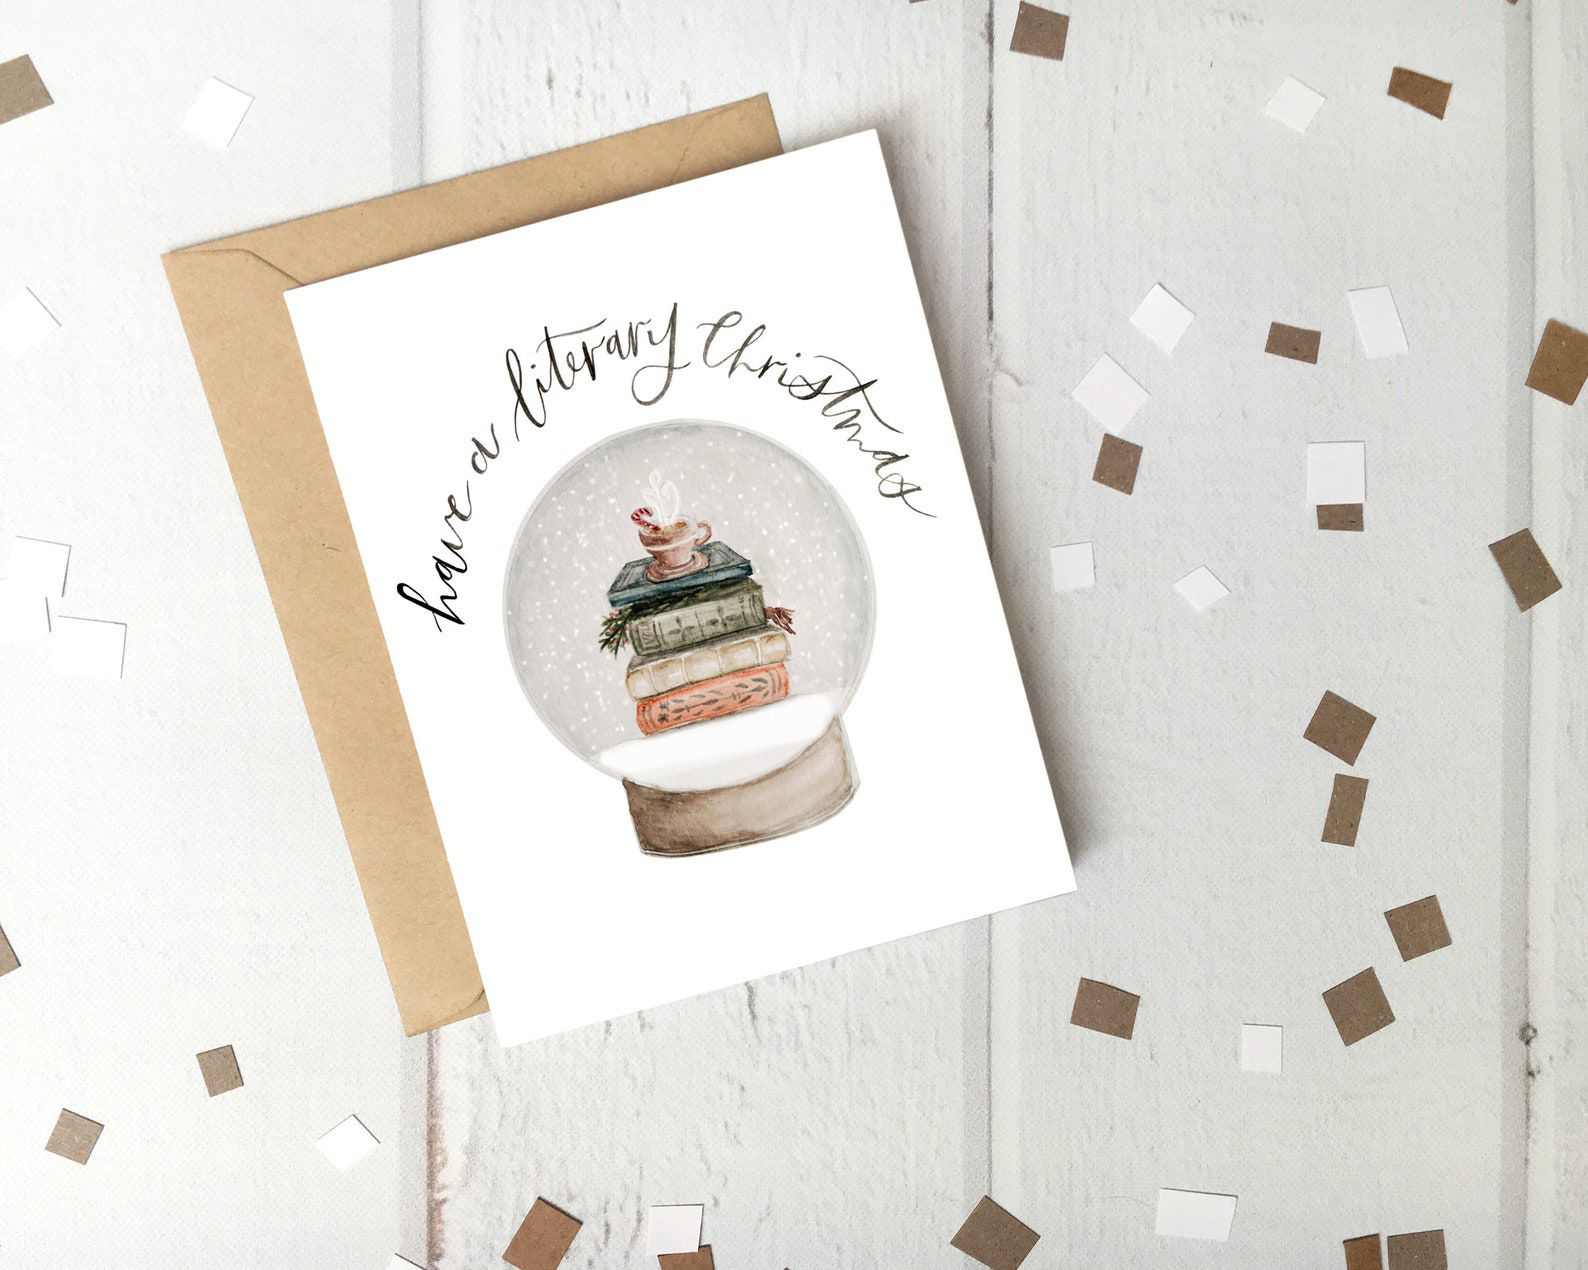 """A white card reads """"Have a literary Christmas"""" and depicts a snowglobe with a stack of books and a cup of hot cocoa inside."""